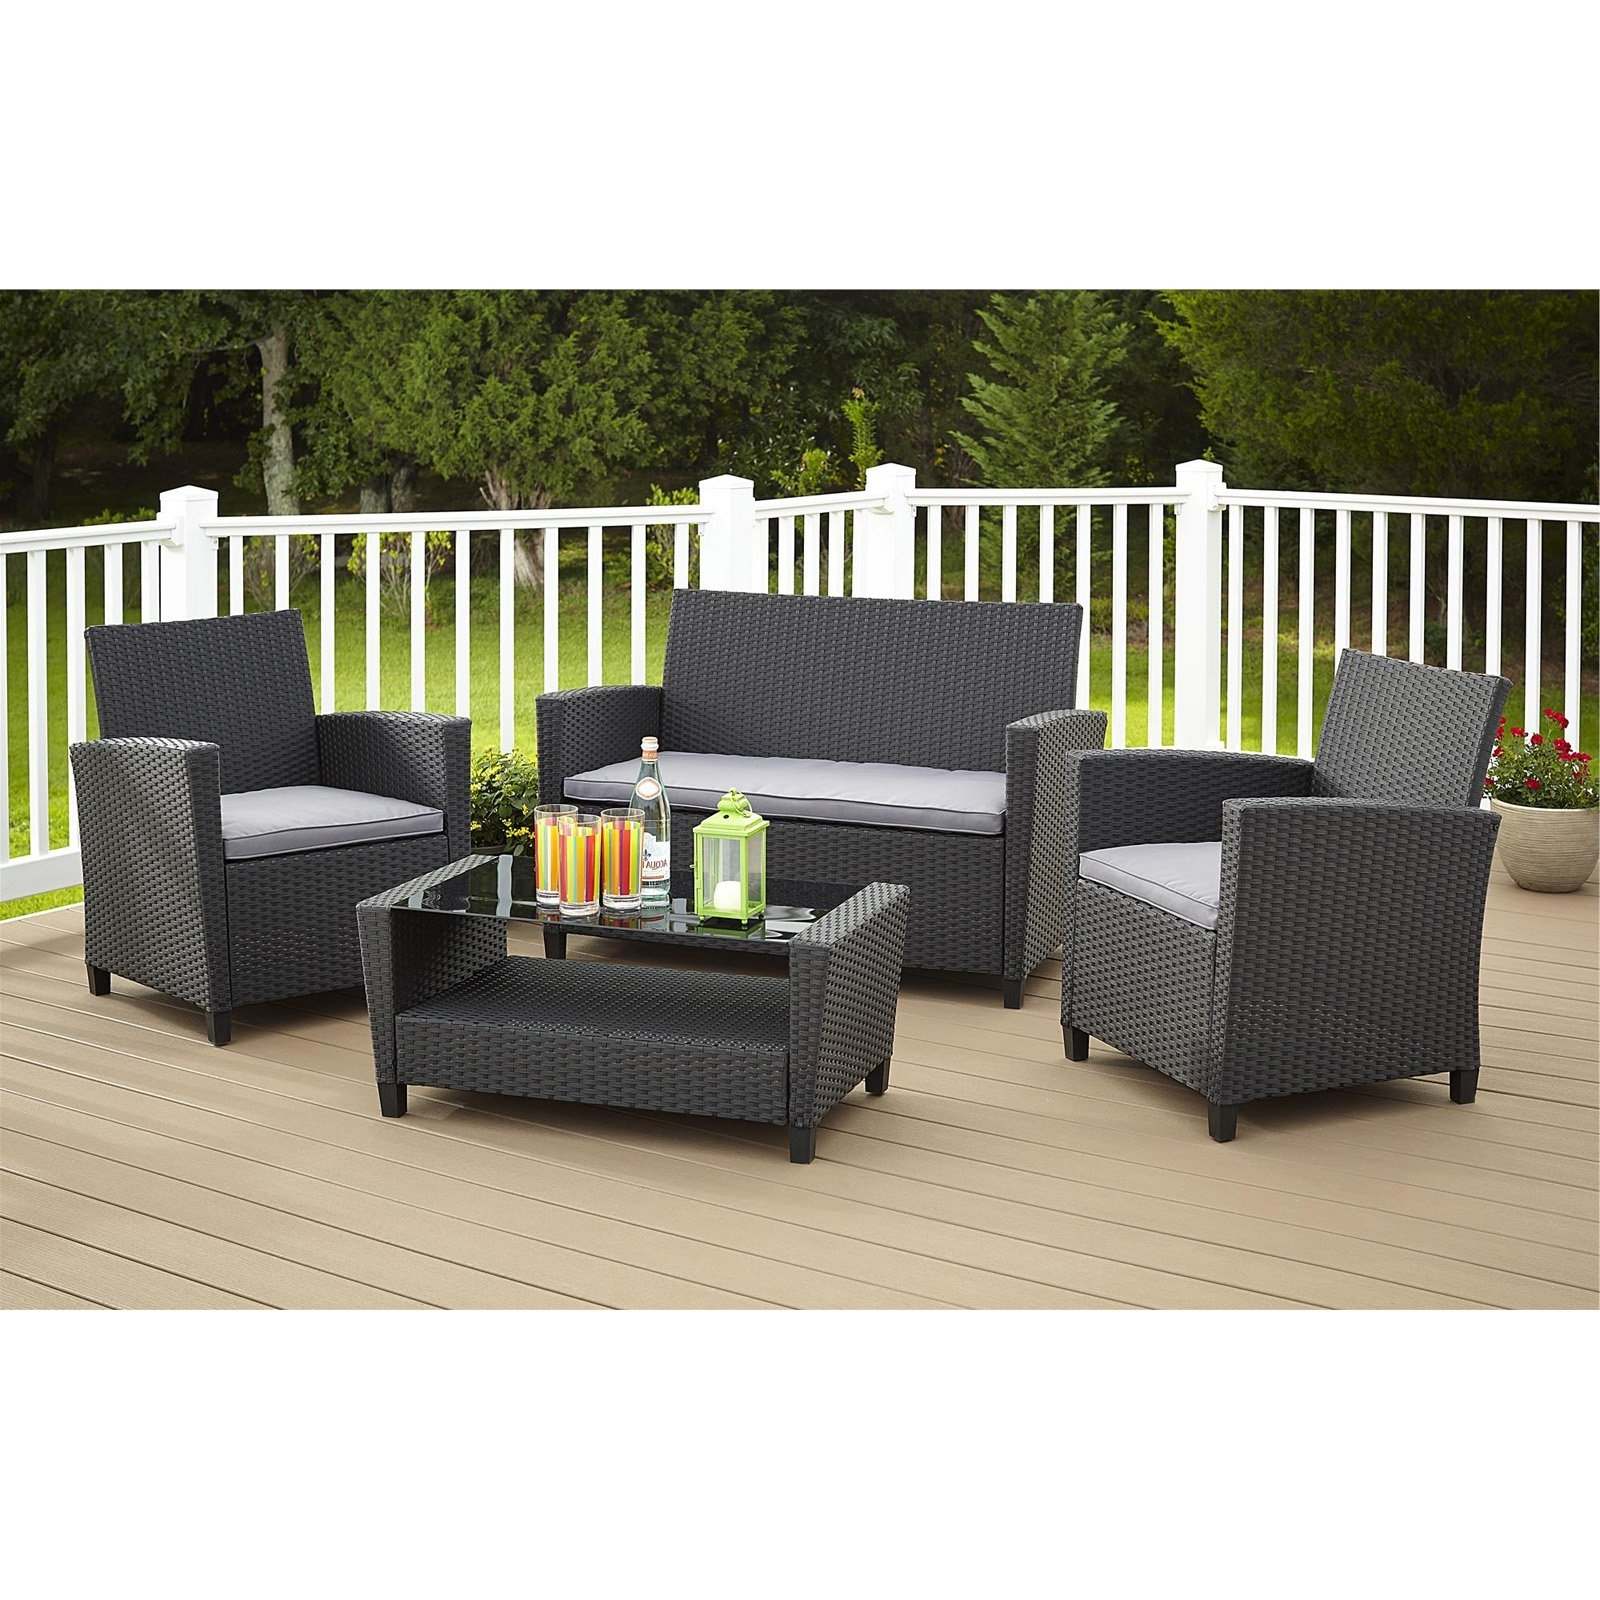 Widely Used Patio Conversation Set With Storage Pertaining To Indoor Conversation Sets Outdoor Sectional With Storage Home Depot (View 20 of 20)